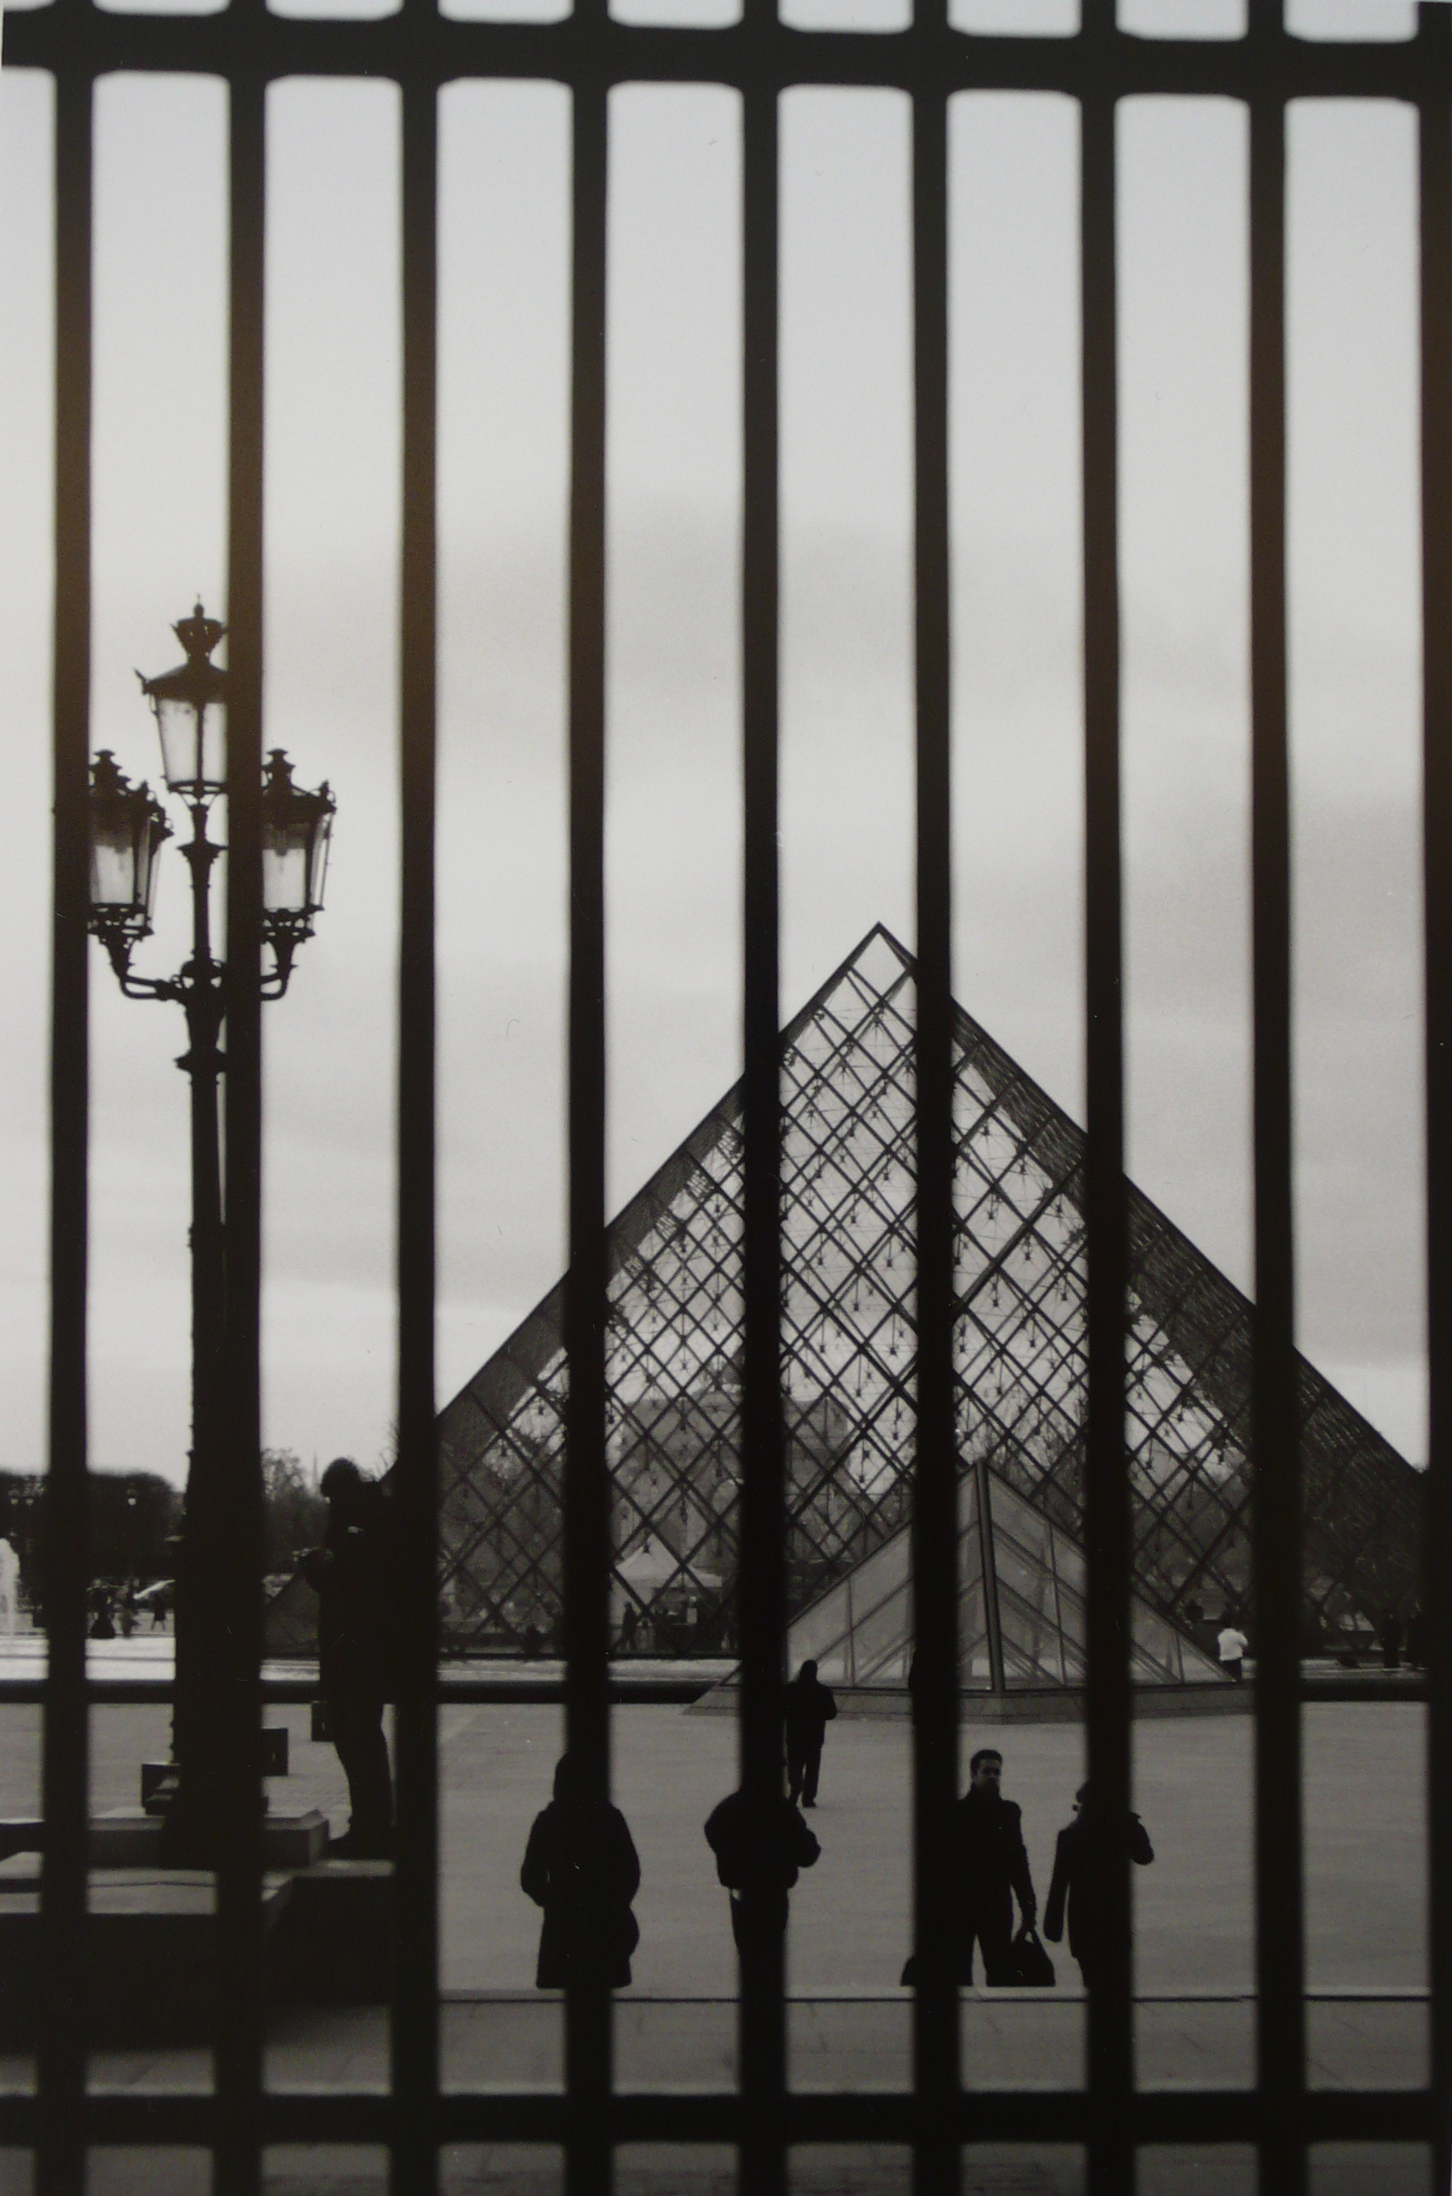 Series of photos were inspired by the contrasting lines in Paris